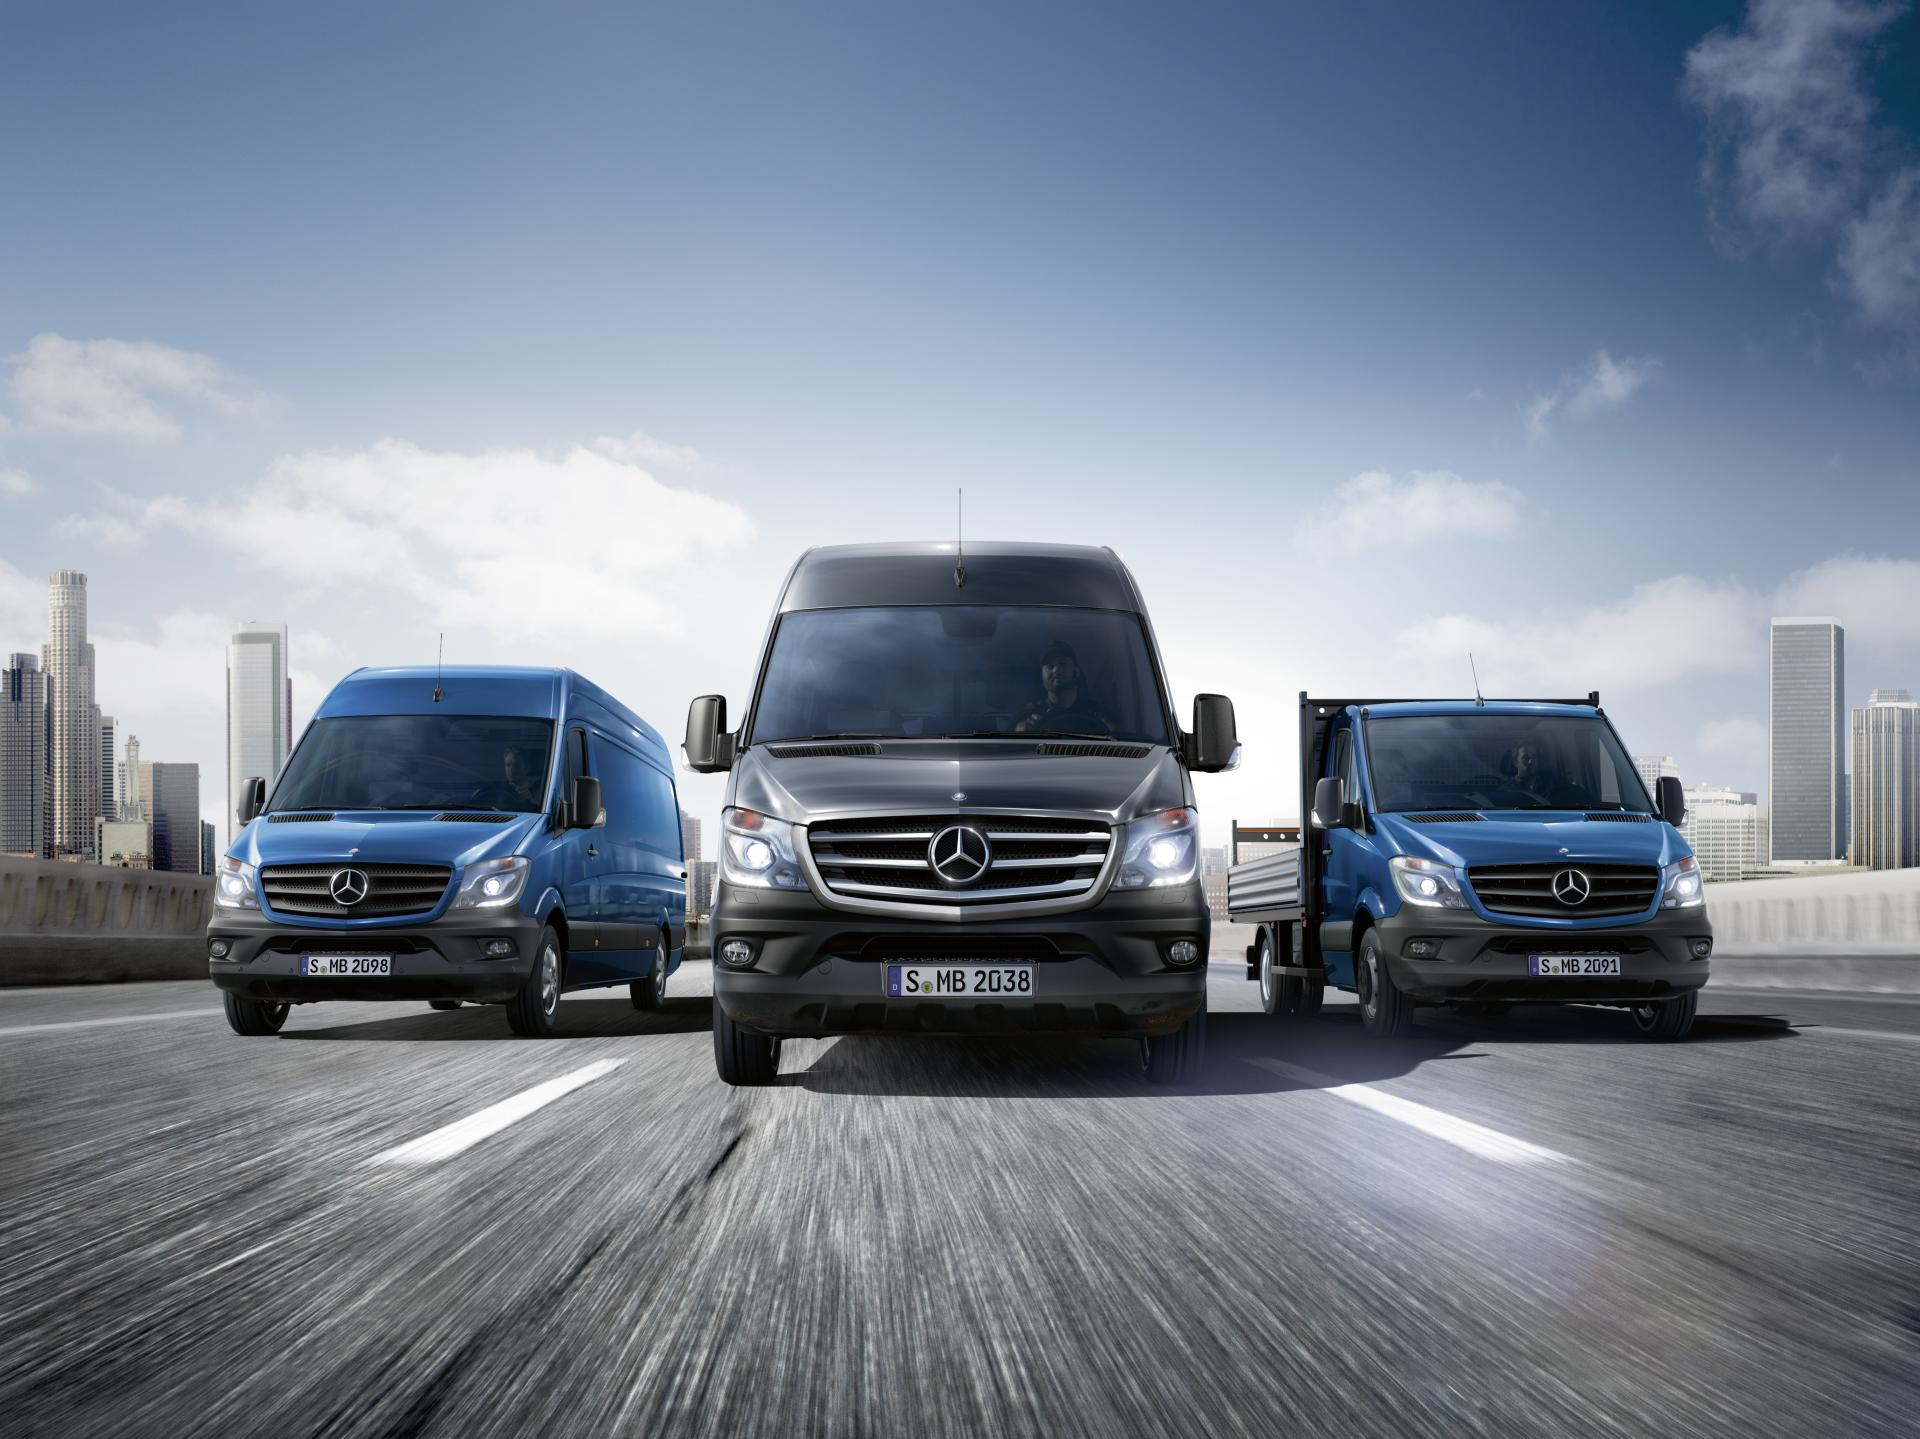 2014 mercedes benz sprinter news and information for Mercedes benz van